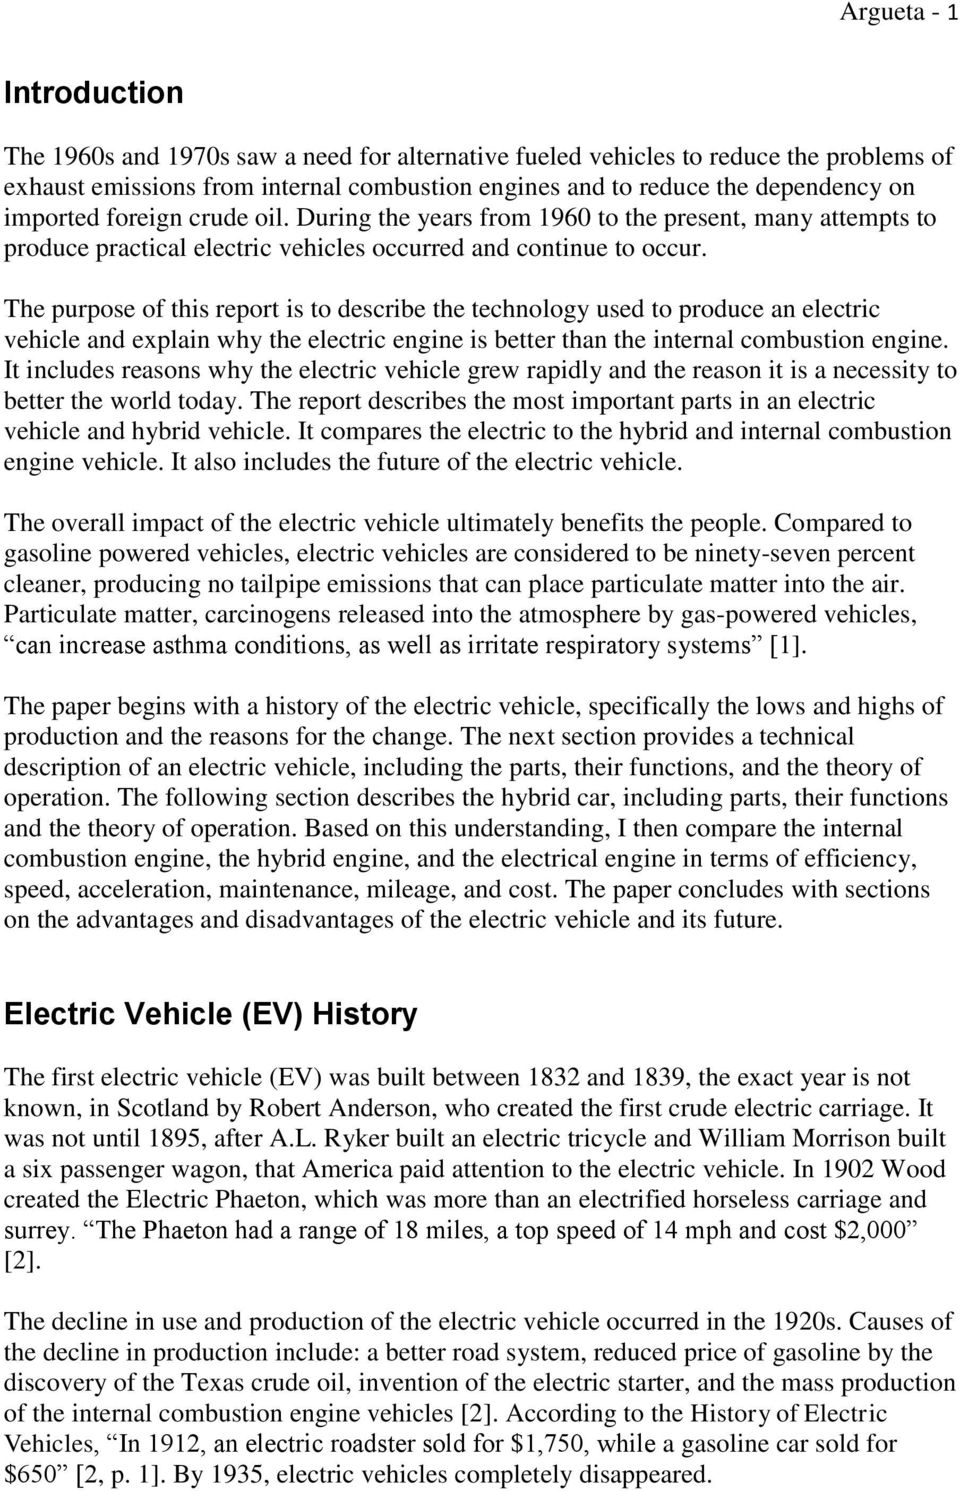 The purpose of this report is to describe the technology used to produce an electric vehicle and explain why the electric engine is better than the internal combustion engine.